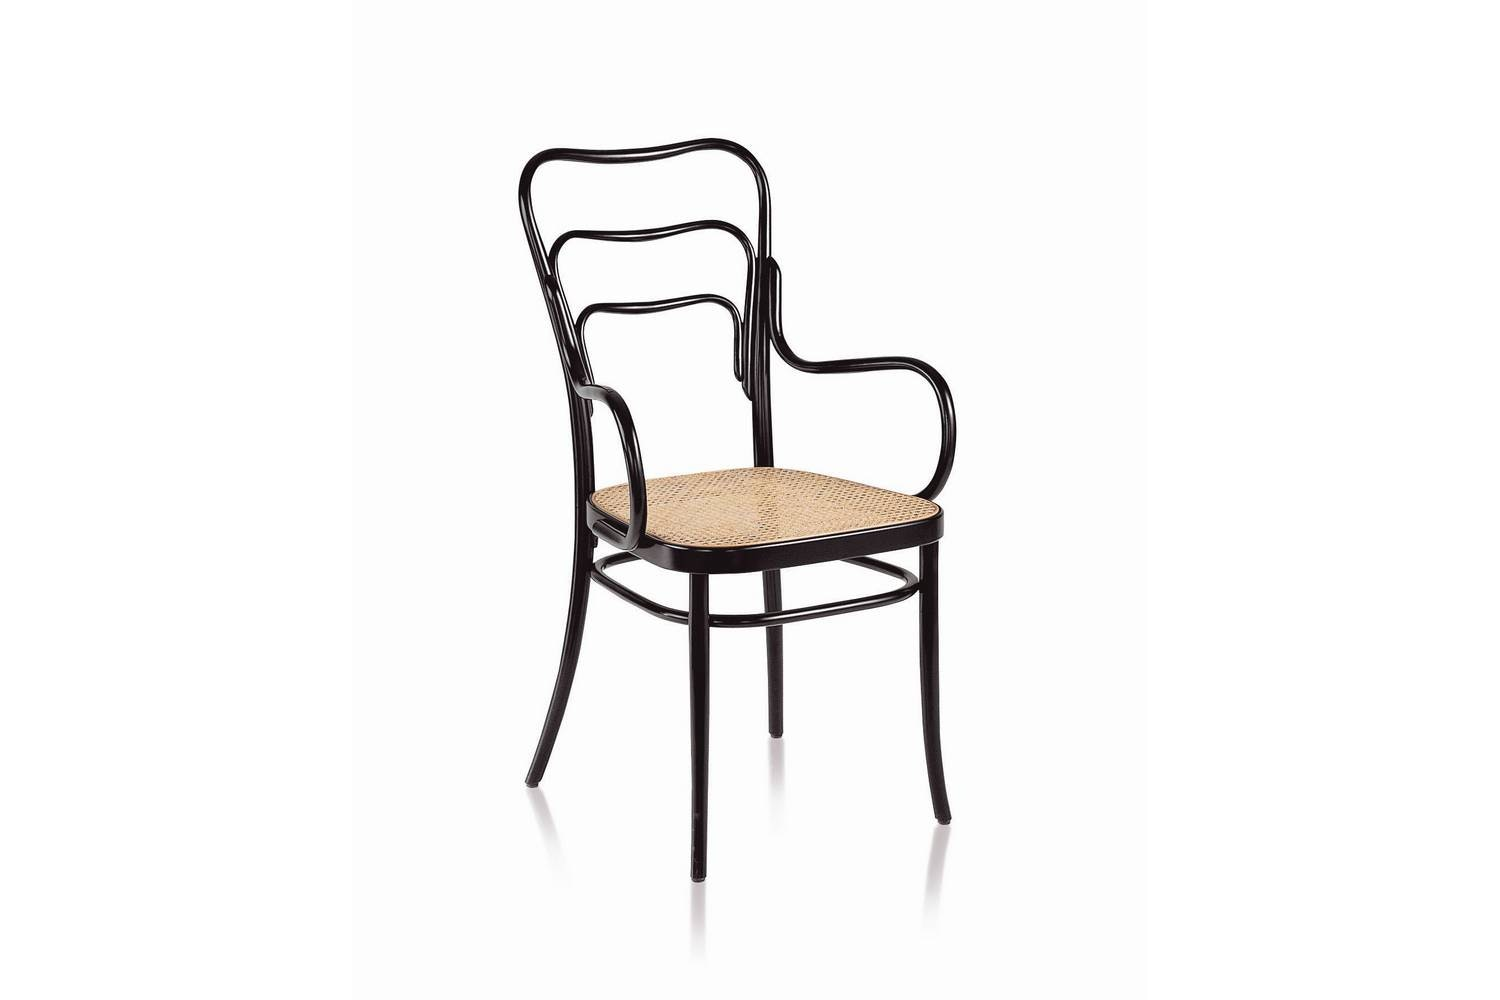 Vienna 144 Chair by Gebruder Thonet Vienna for Wiener GTV Design